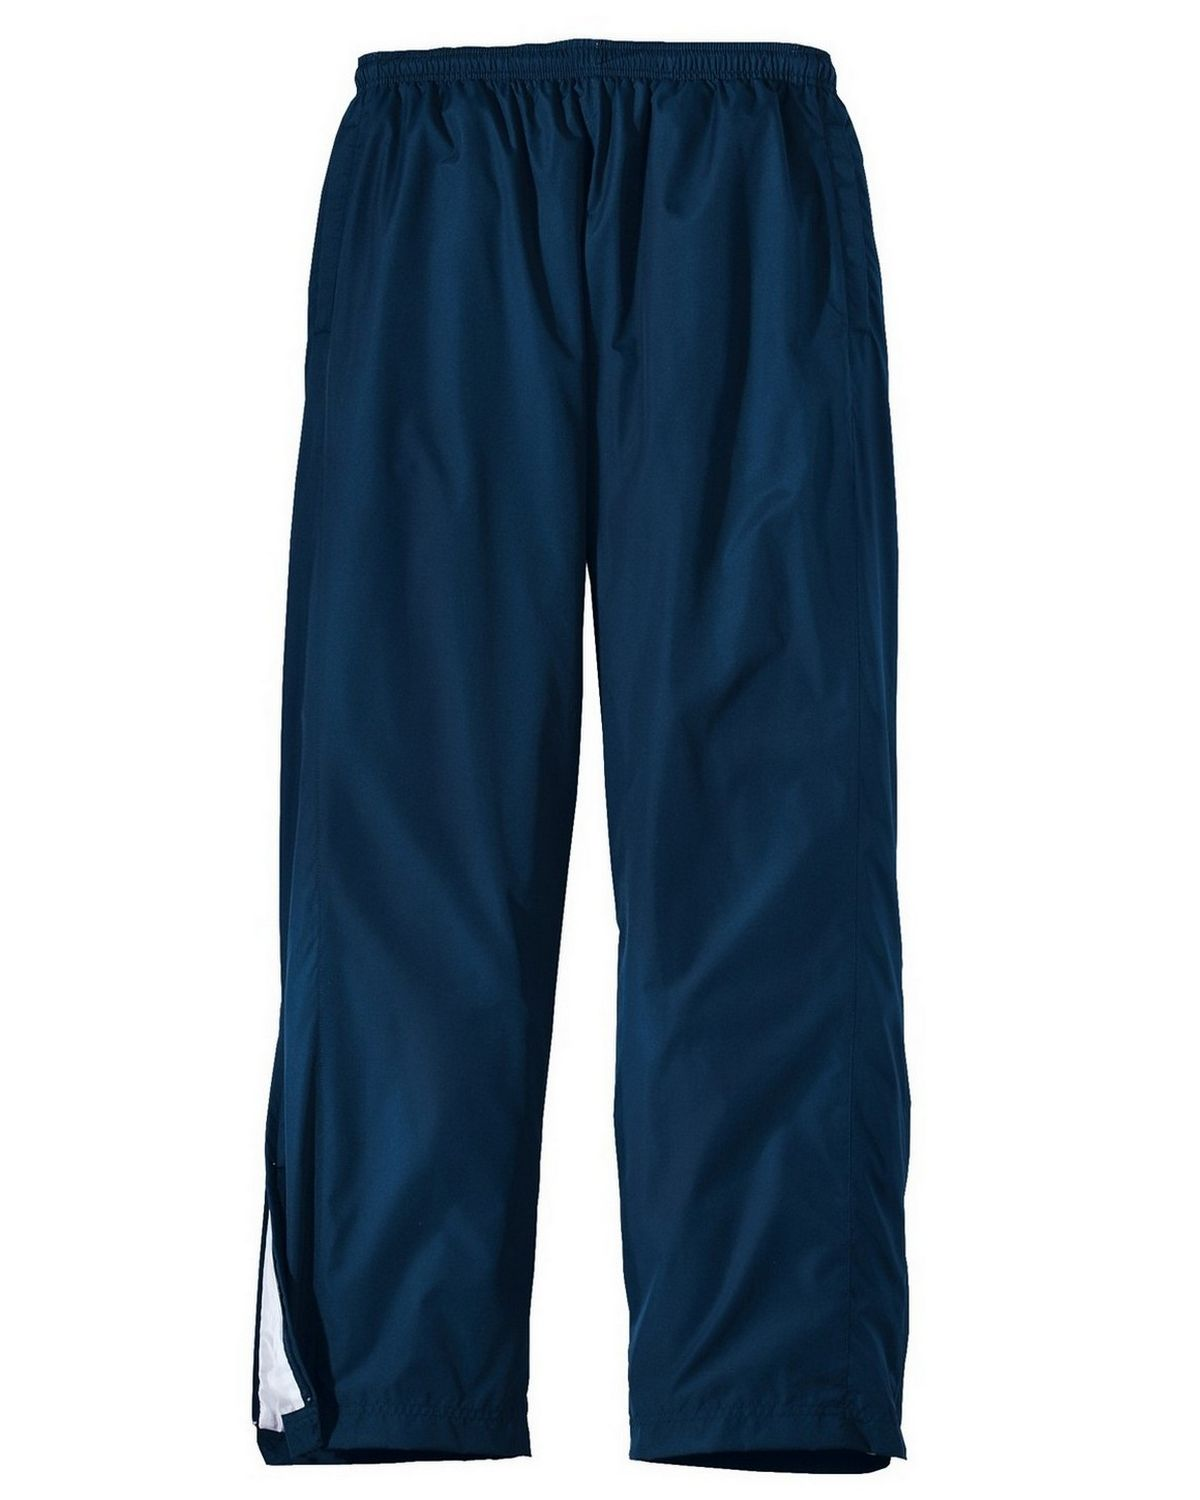 Sport Tek Youth Wind Pant Mimbarschool Com Ng * 100% polyester * mesh lining above knees, nylon lining below for easy on/off * elastic waistband with drawcord * side. mimbar schools